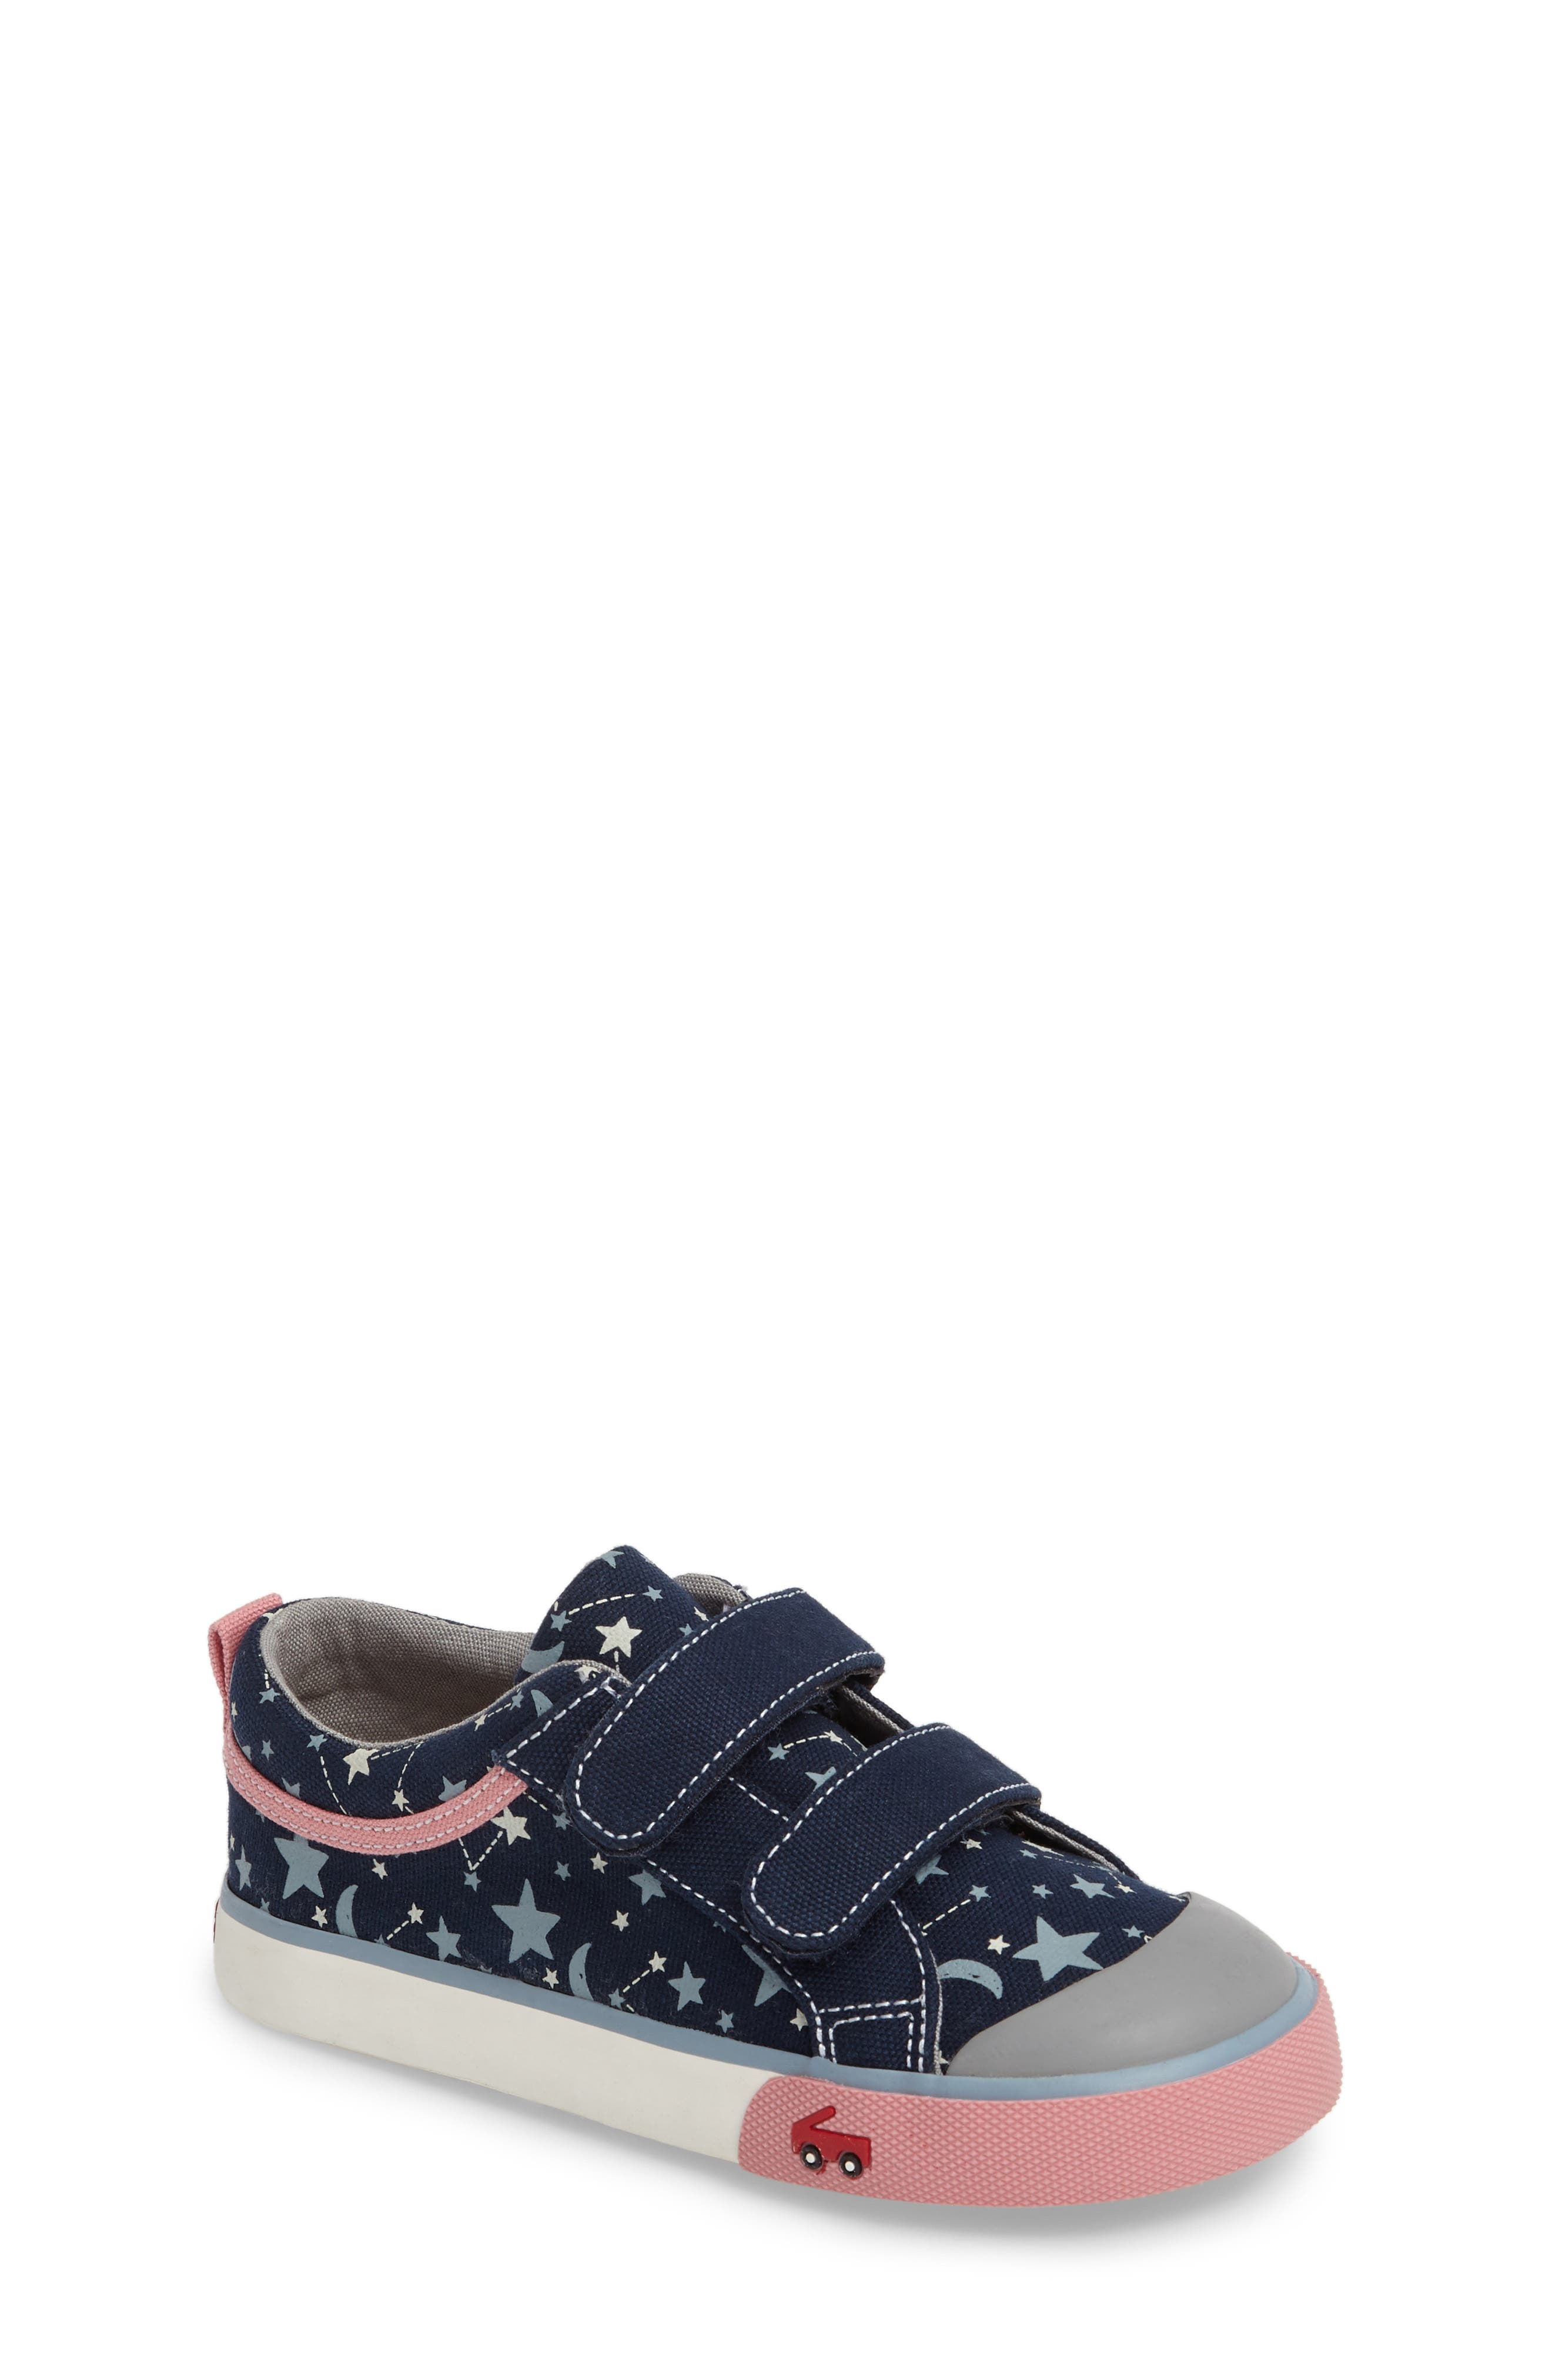 Main Image - See Kai Run Robyne Sneaker (Baby, Walker & Toddler)